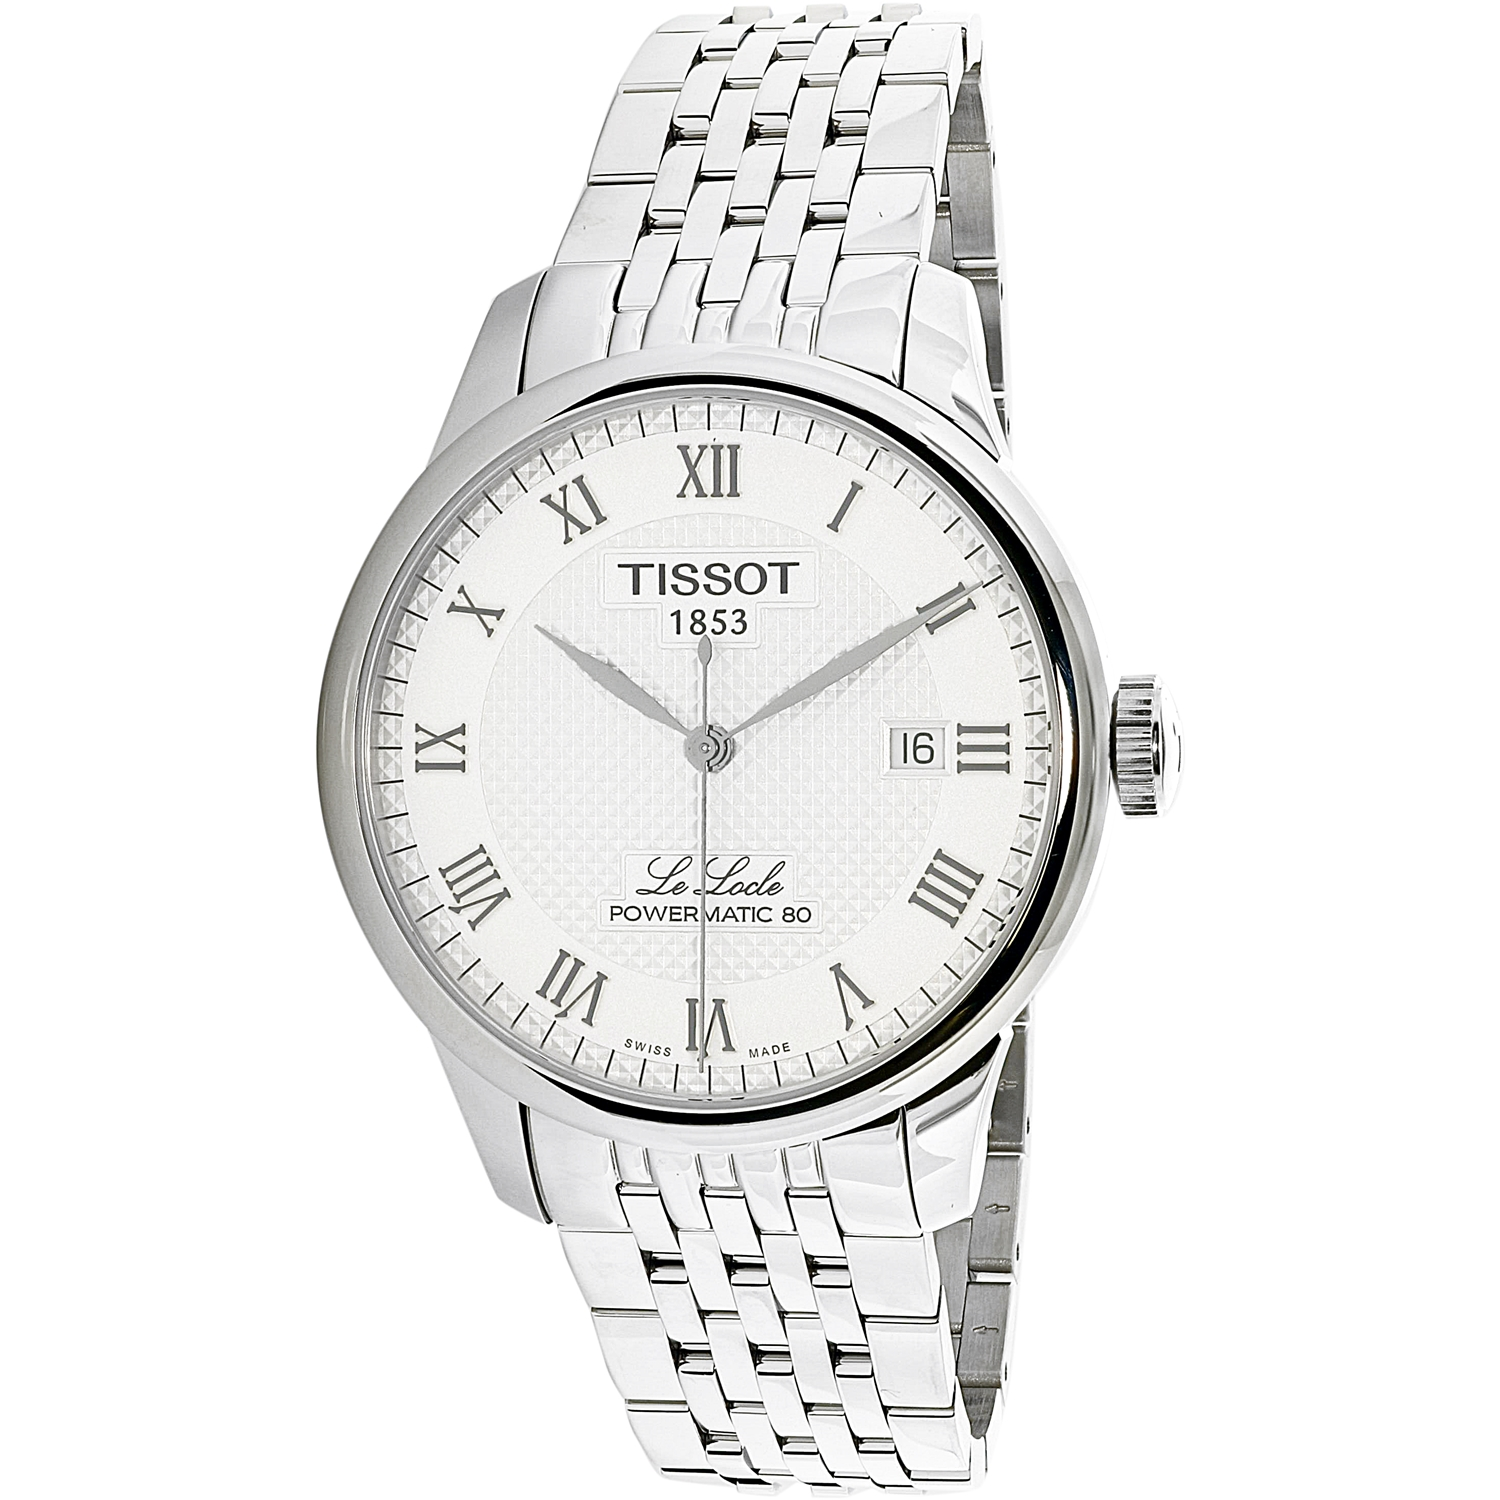 Meuble Tissot Tissot Men S Le Locle T006 407 11 033 00 Silver Stainless Steel